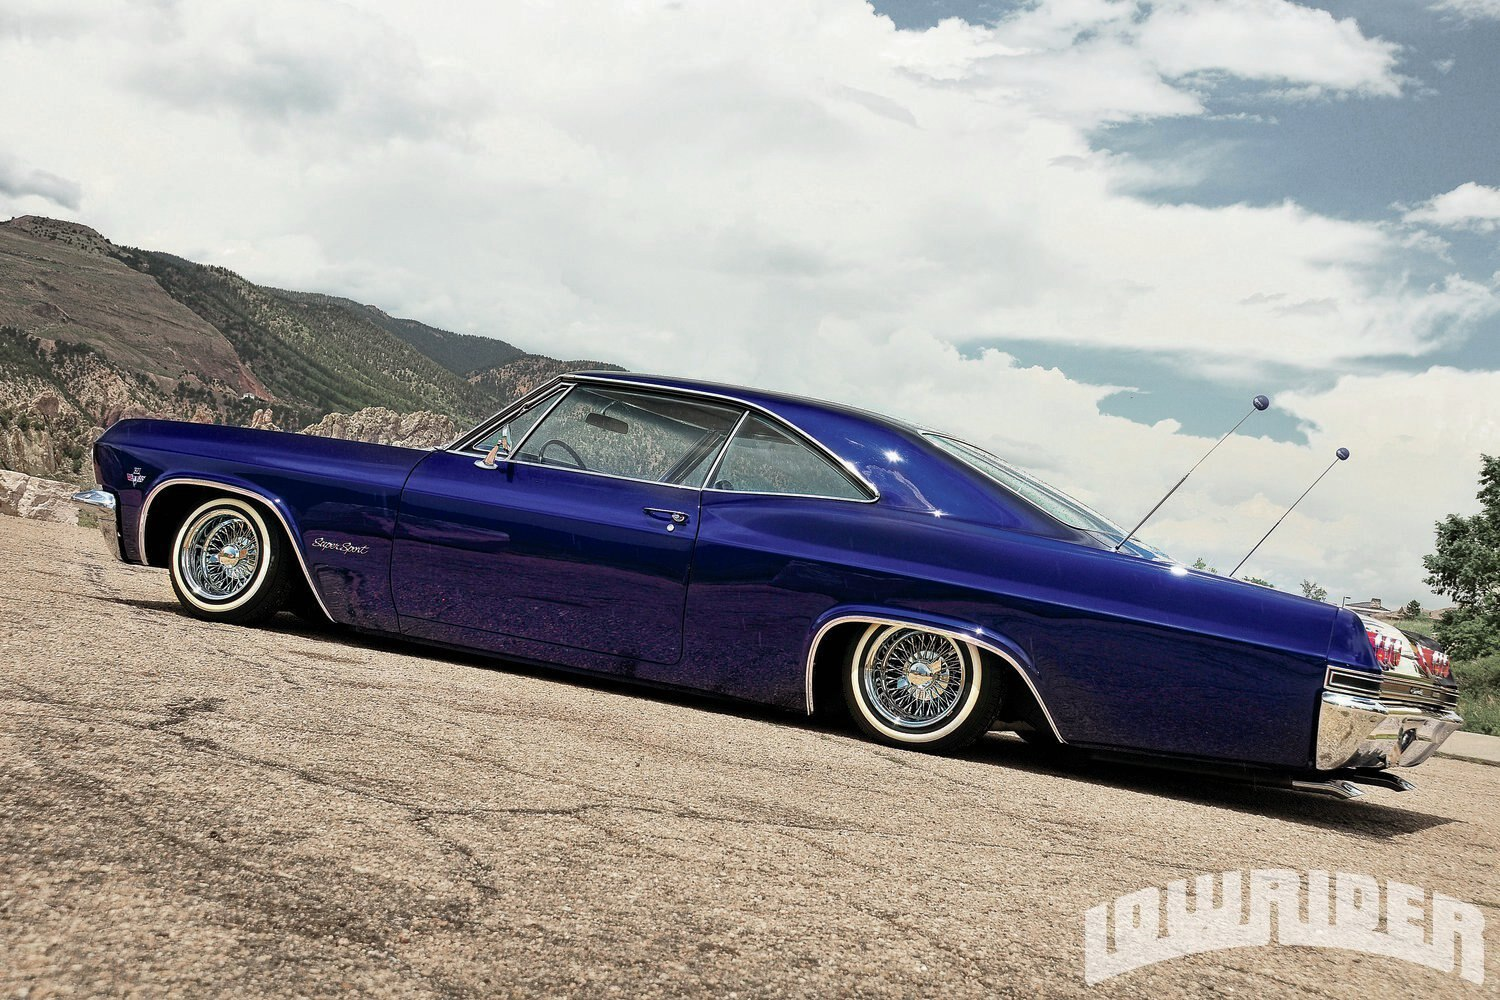 1965-chevrolet-impala-SS-rear-left-side-view2